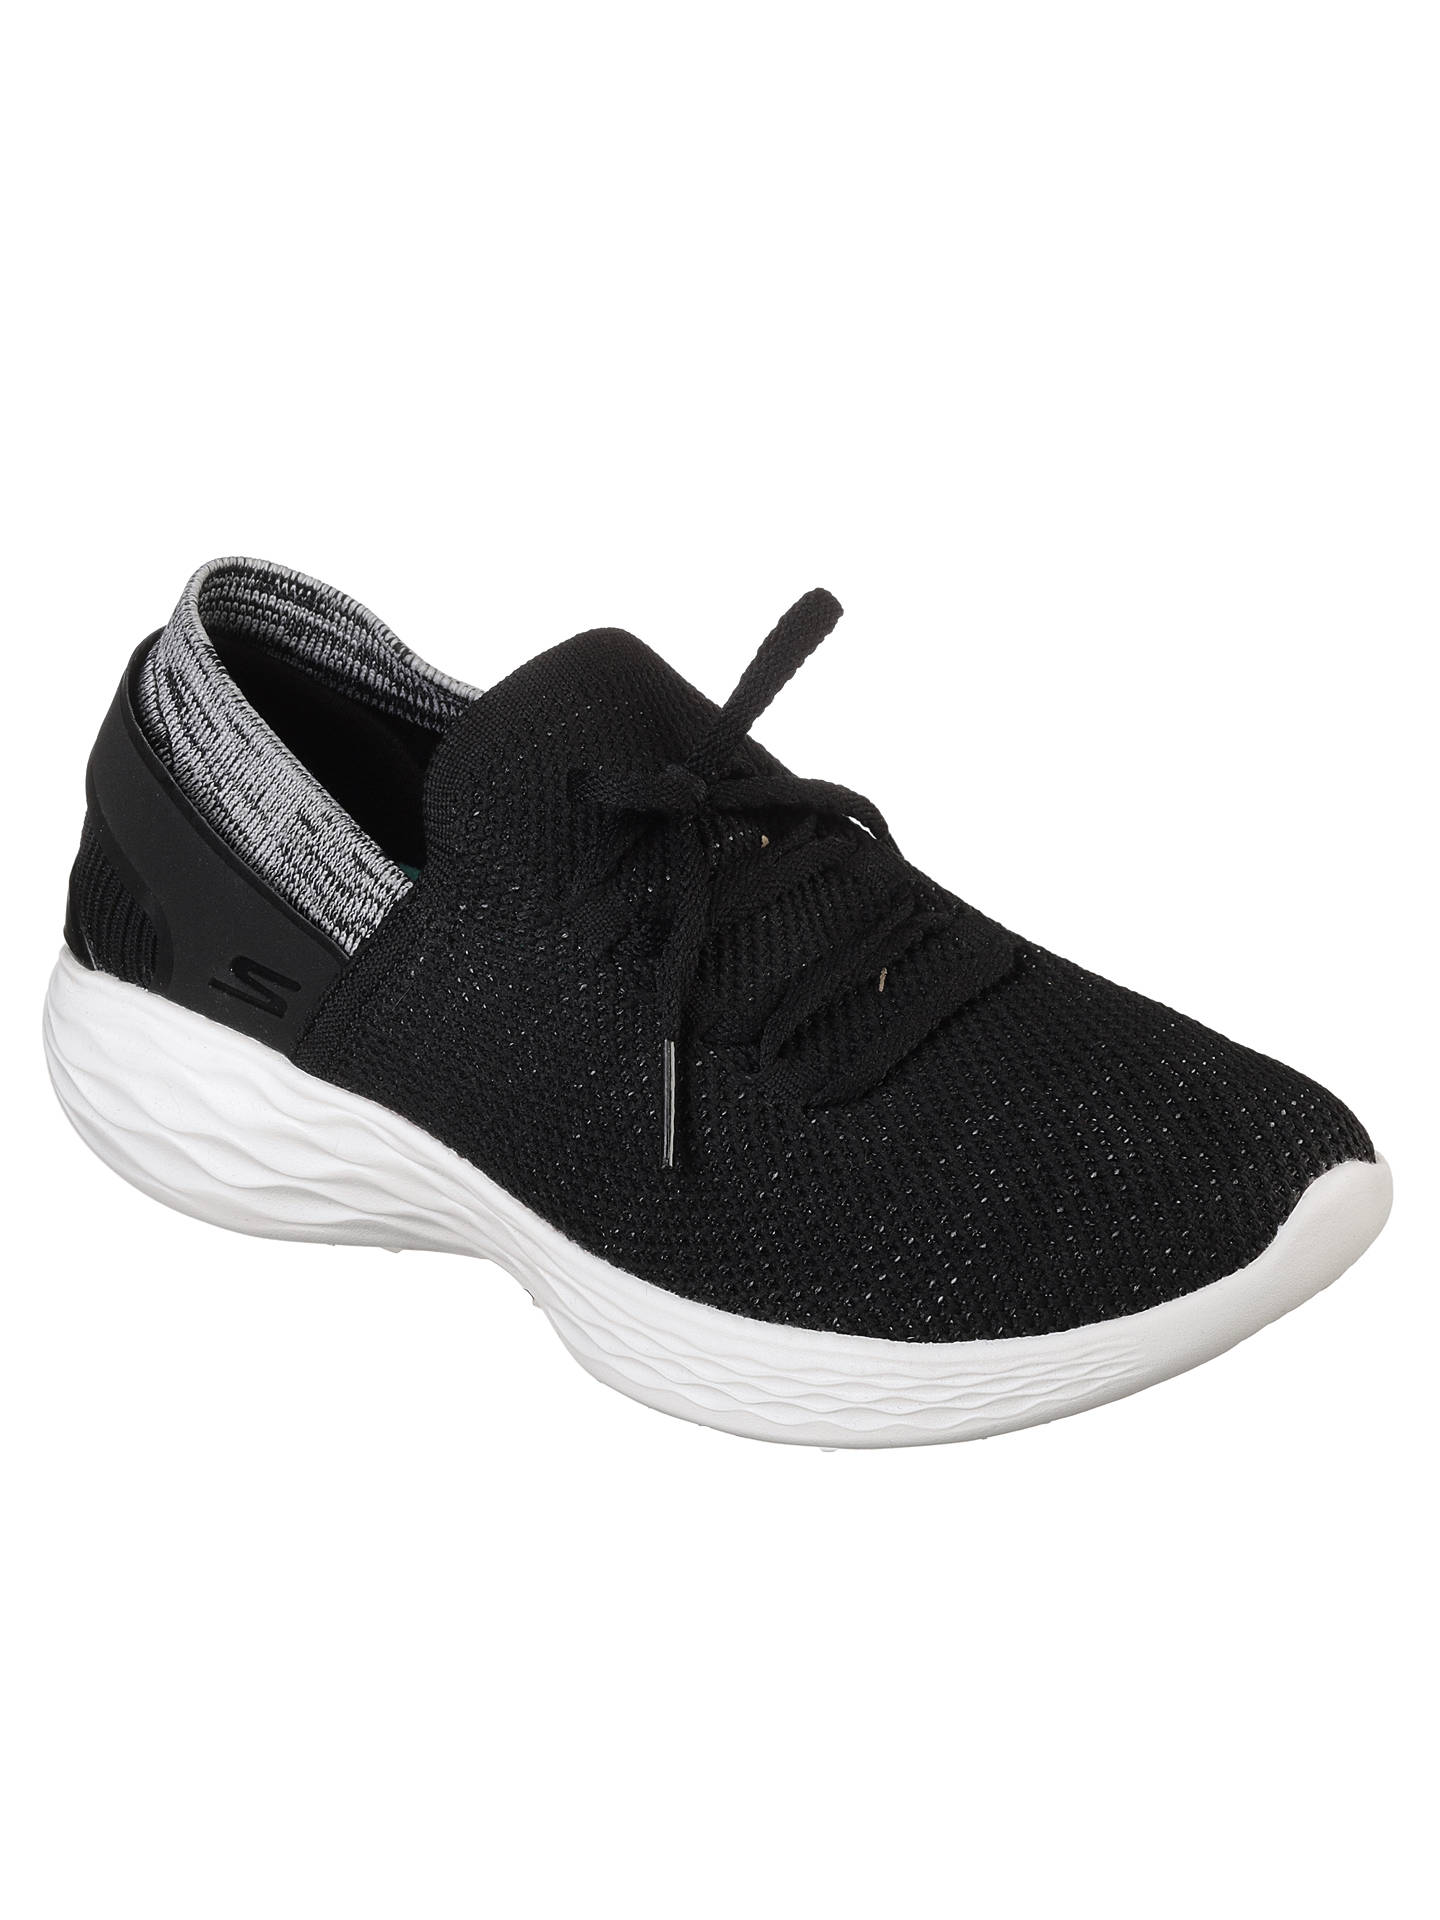 BuySkechers You Spirit Slip On Trainers, Black/White, 5 Online at johnlewis.com